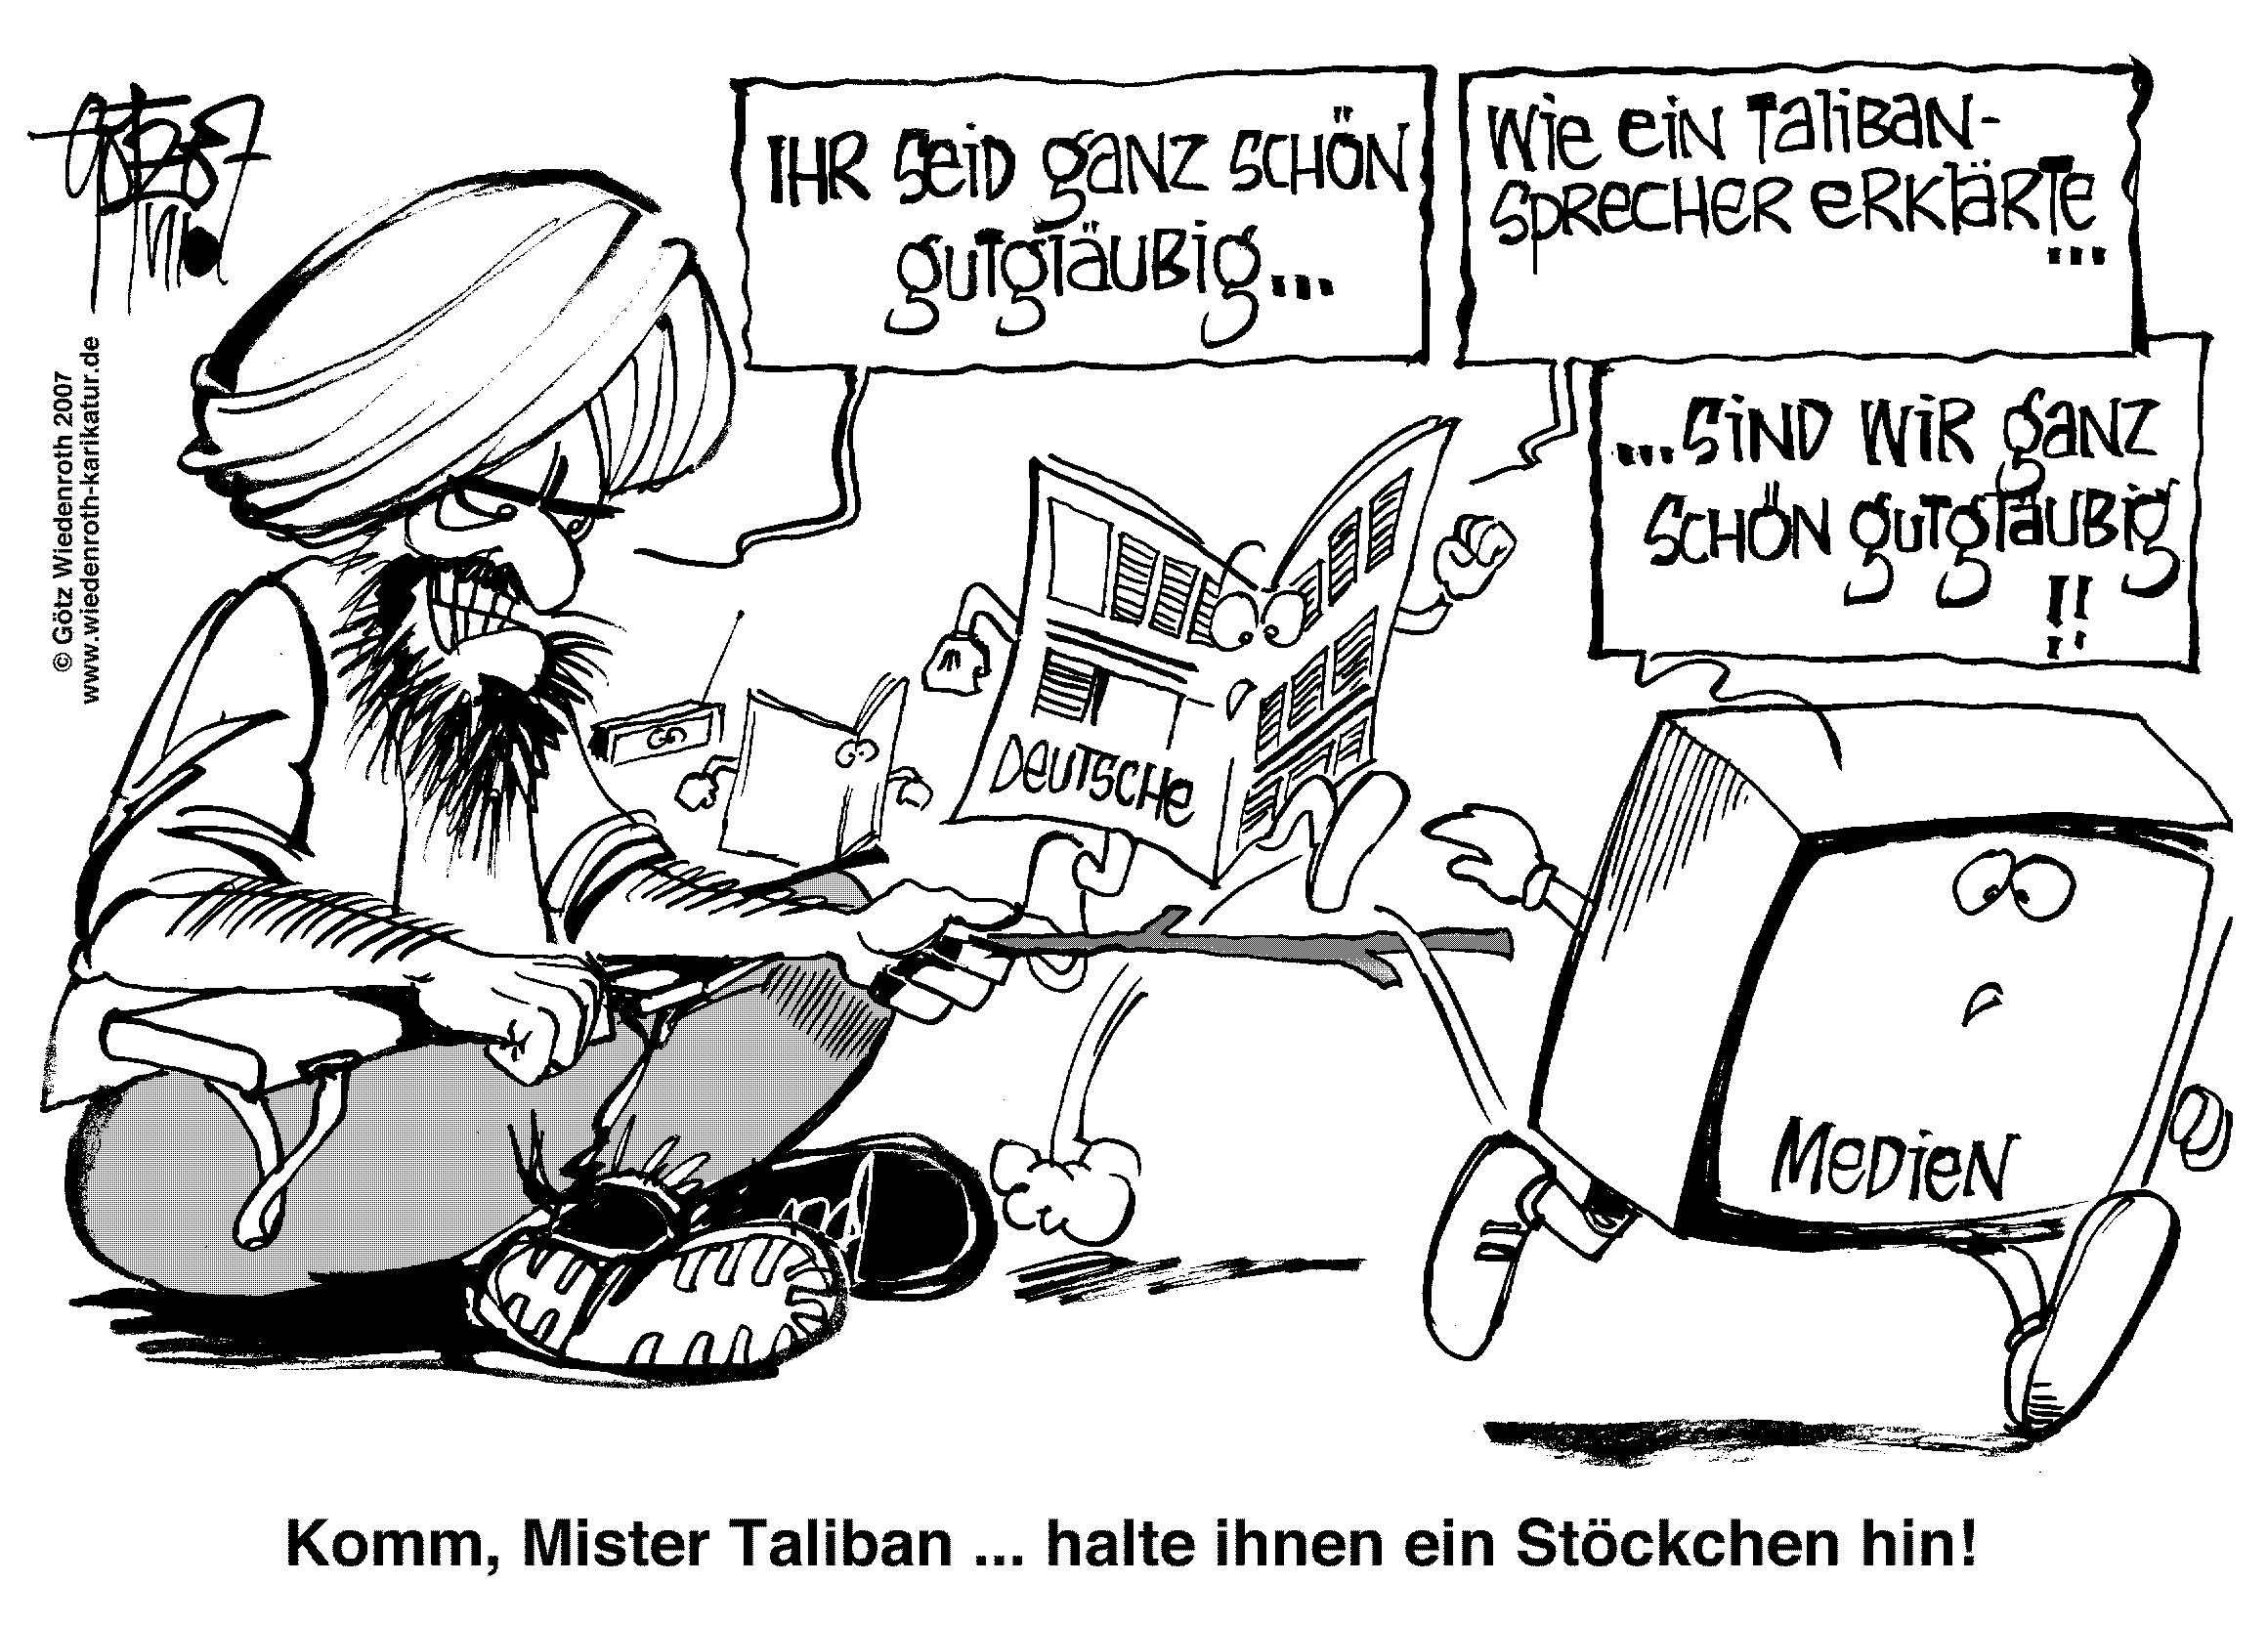 War on Terrorism, Wiedenroth, Karikatur, cartoon, Germany, Allemagne